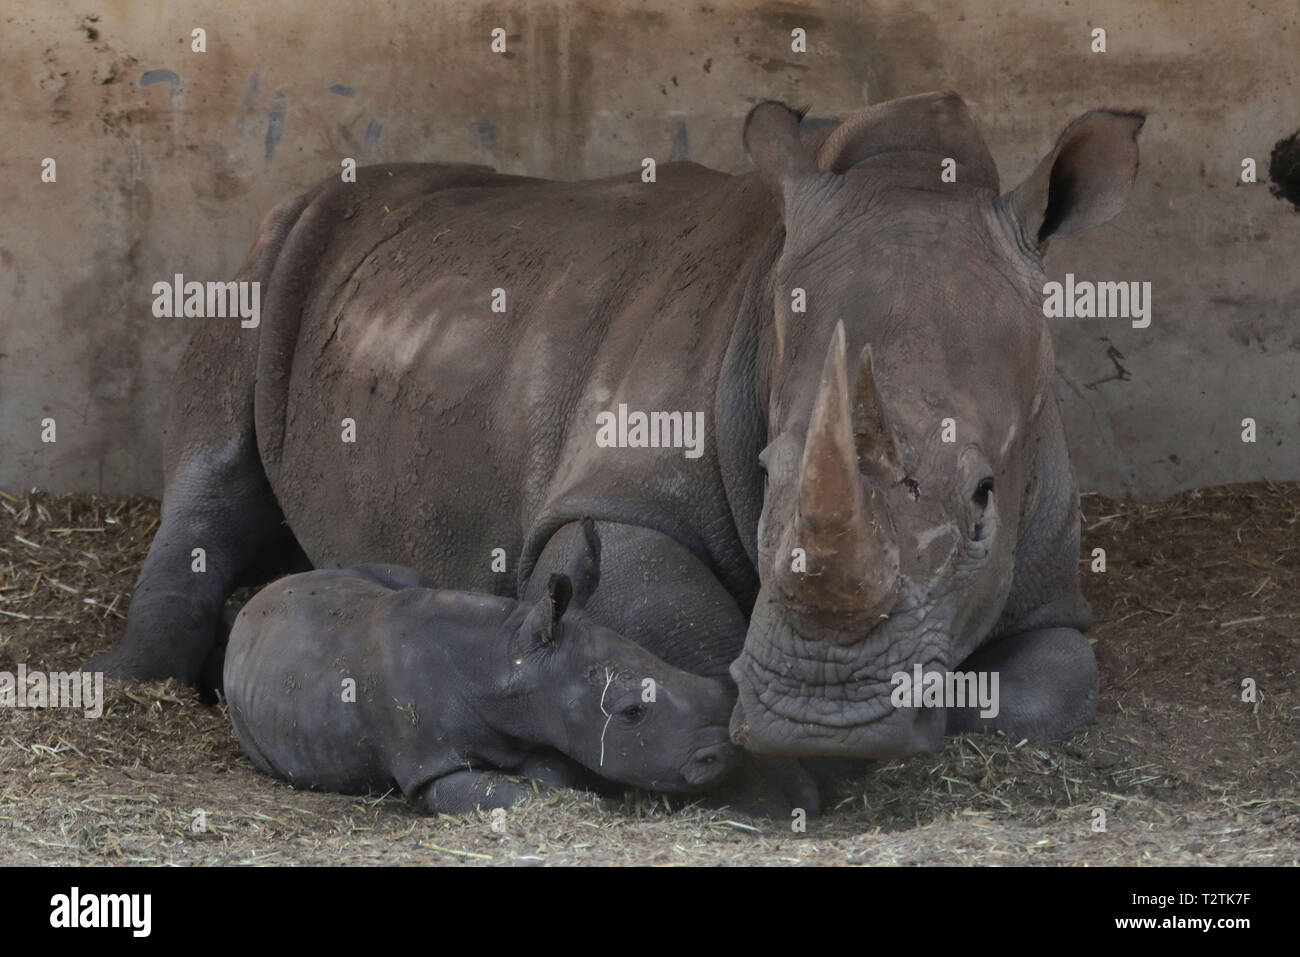 Ramat Gan, Israel. 3rd Apr, 2019. The newly born female southern white rhinoceros and its mother are seen at the Safari Park in Ramat Gan, Israel, April 3, 2019. Credit: JINI/Gideon Markowicz/Xinhua/Alamy Live News Stock Photo